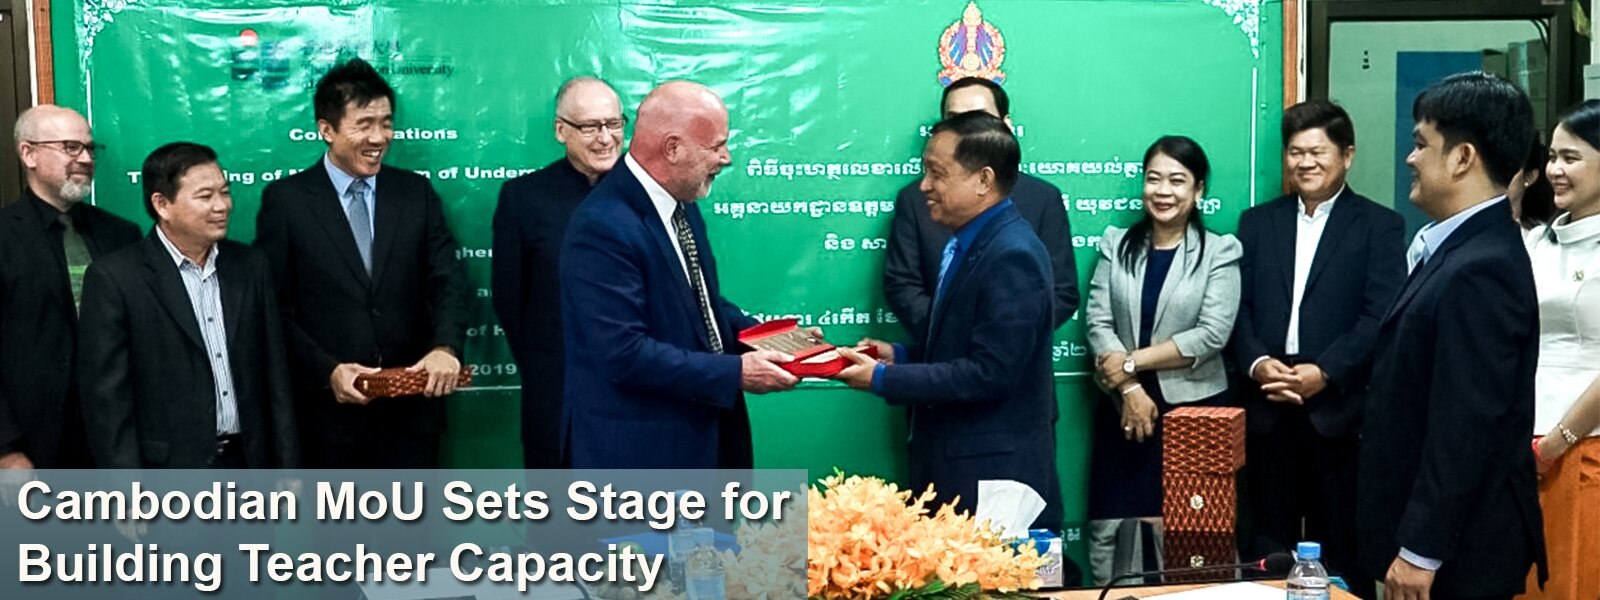 Cambodian MoU Sets Stage for Building Teacher Capacity